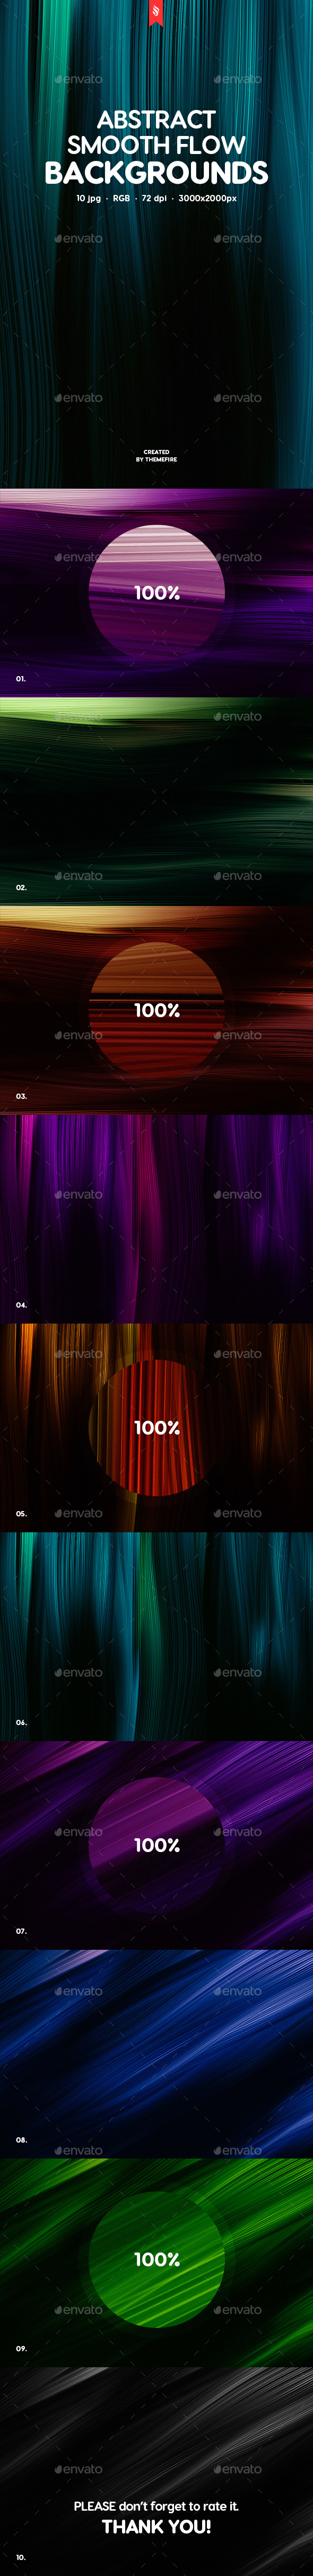 Smooth Flow Backgrounds - Abstract Backgrounds